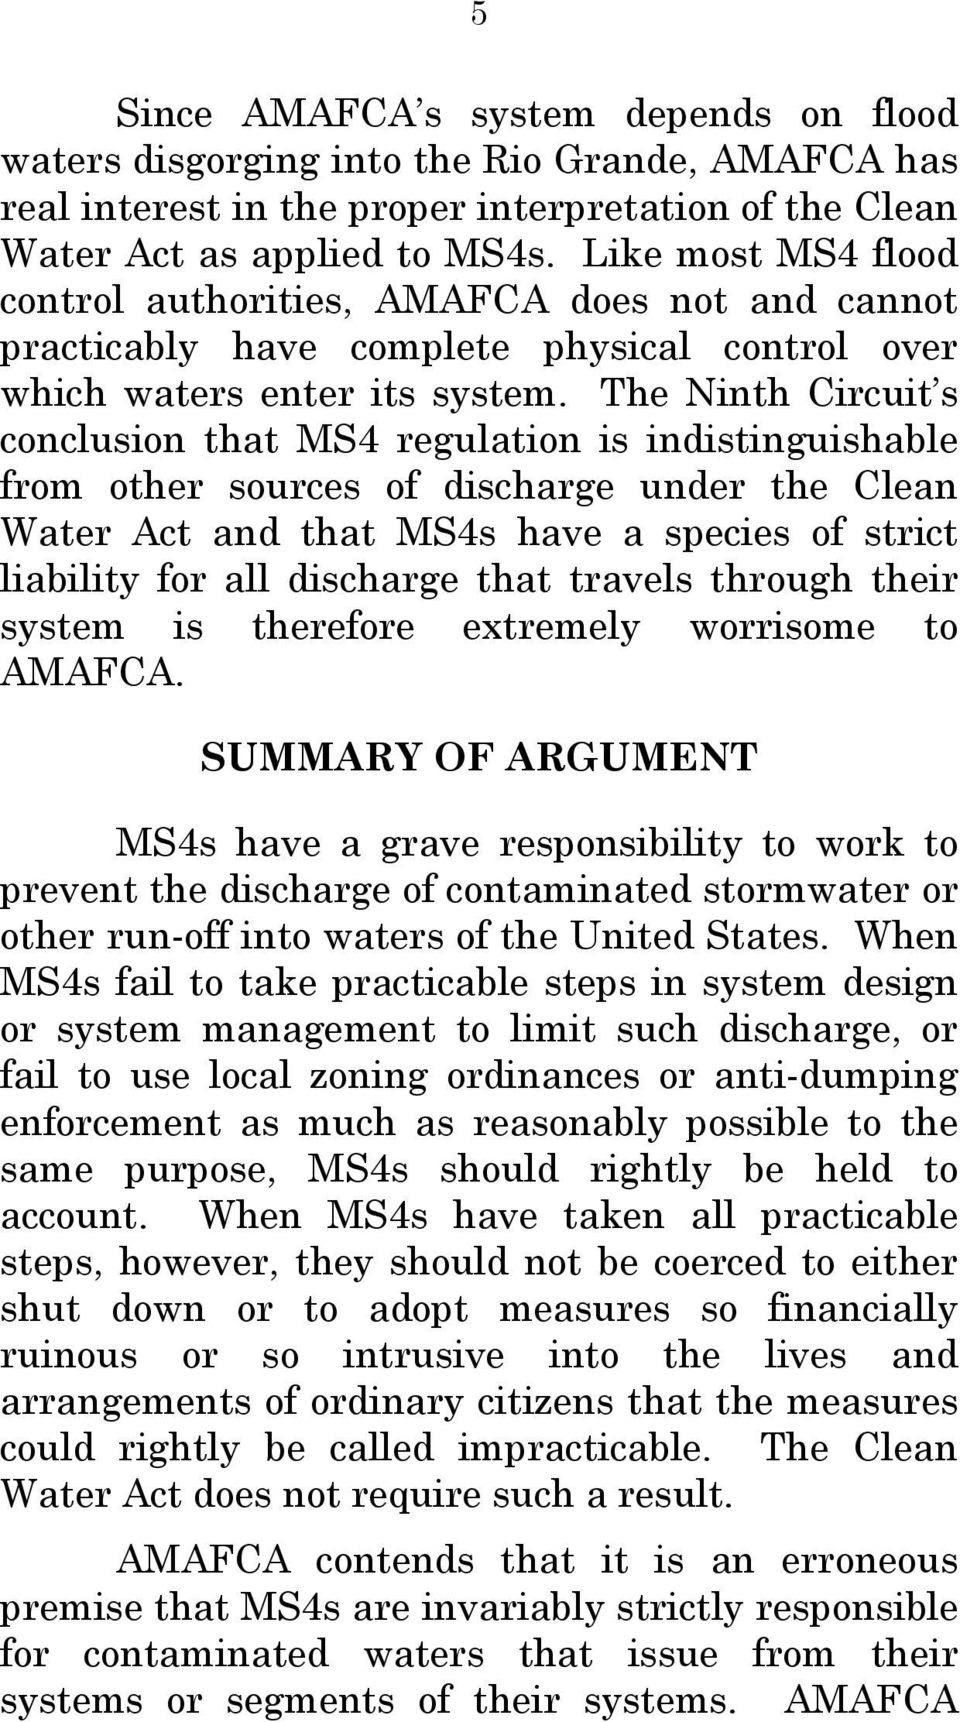 The Ninth Circuit s conclusion that MS4 regulation is indistinguishable from other sources of discharge under the Clean Water Act and that MS4s have a species of strict liability for all discharge